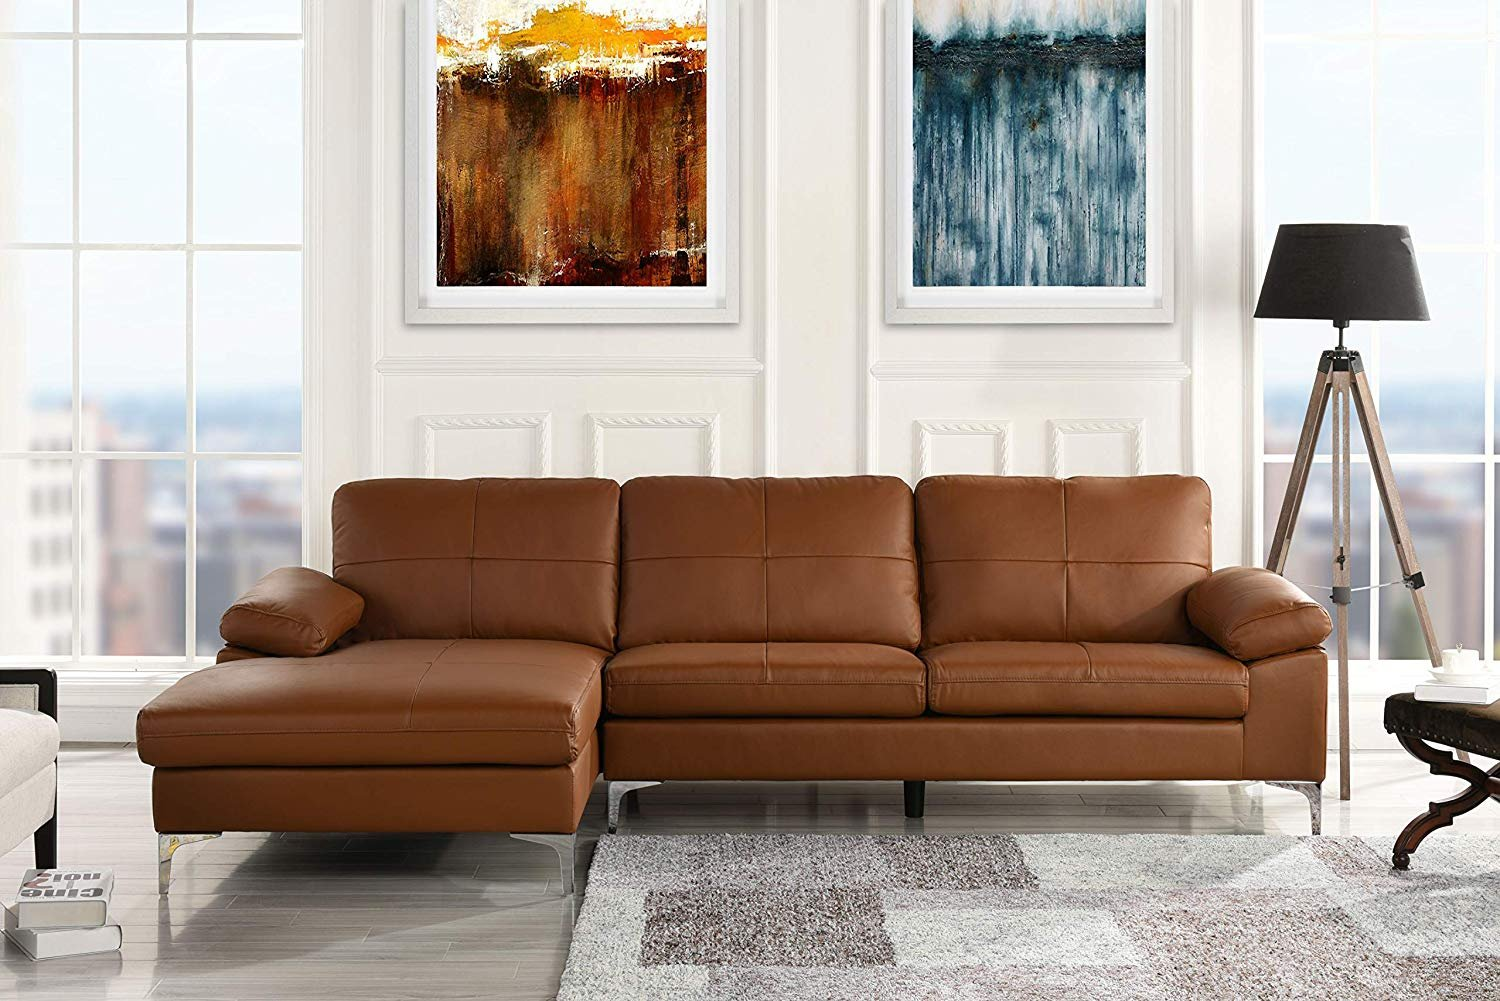 Details About Camel Leather Match Family Room Sectional Sofa L Shape Couch With Left Chaise